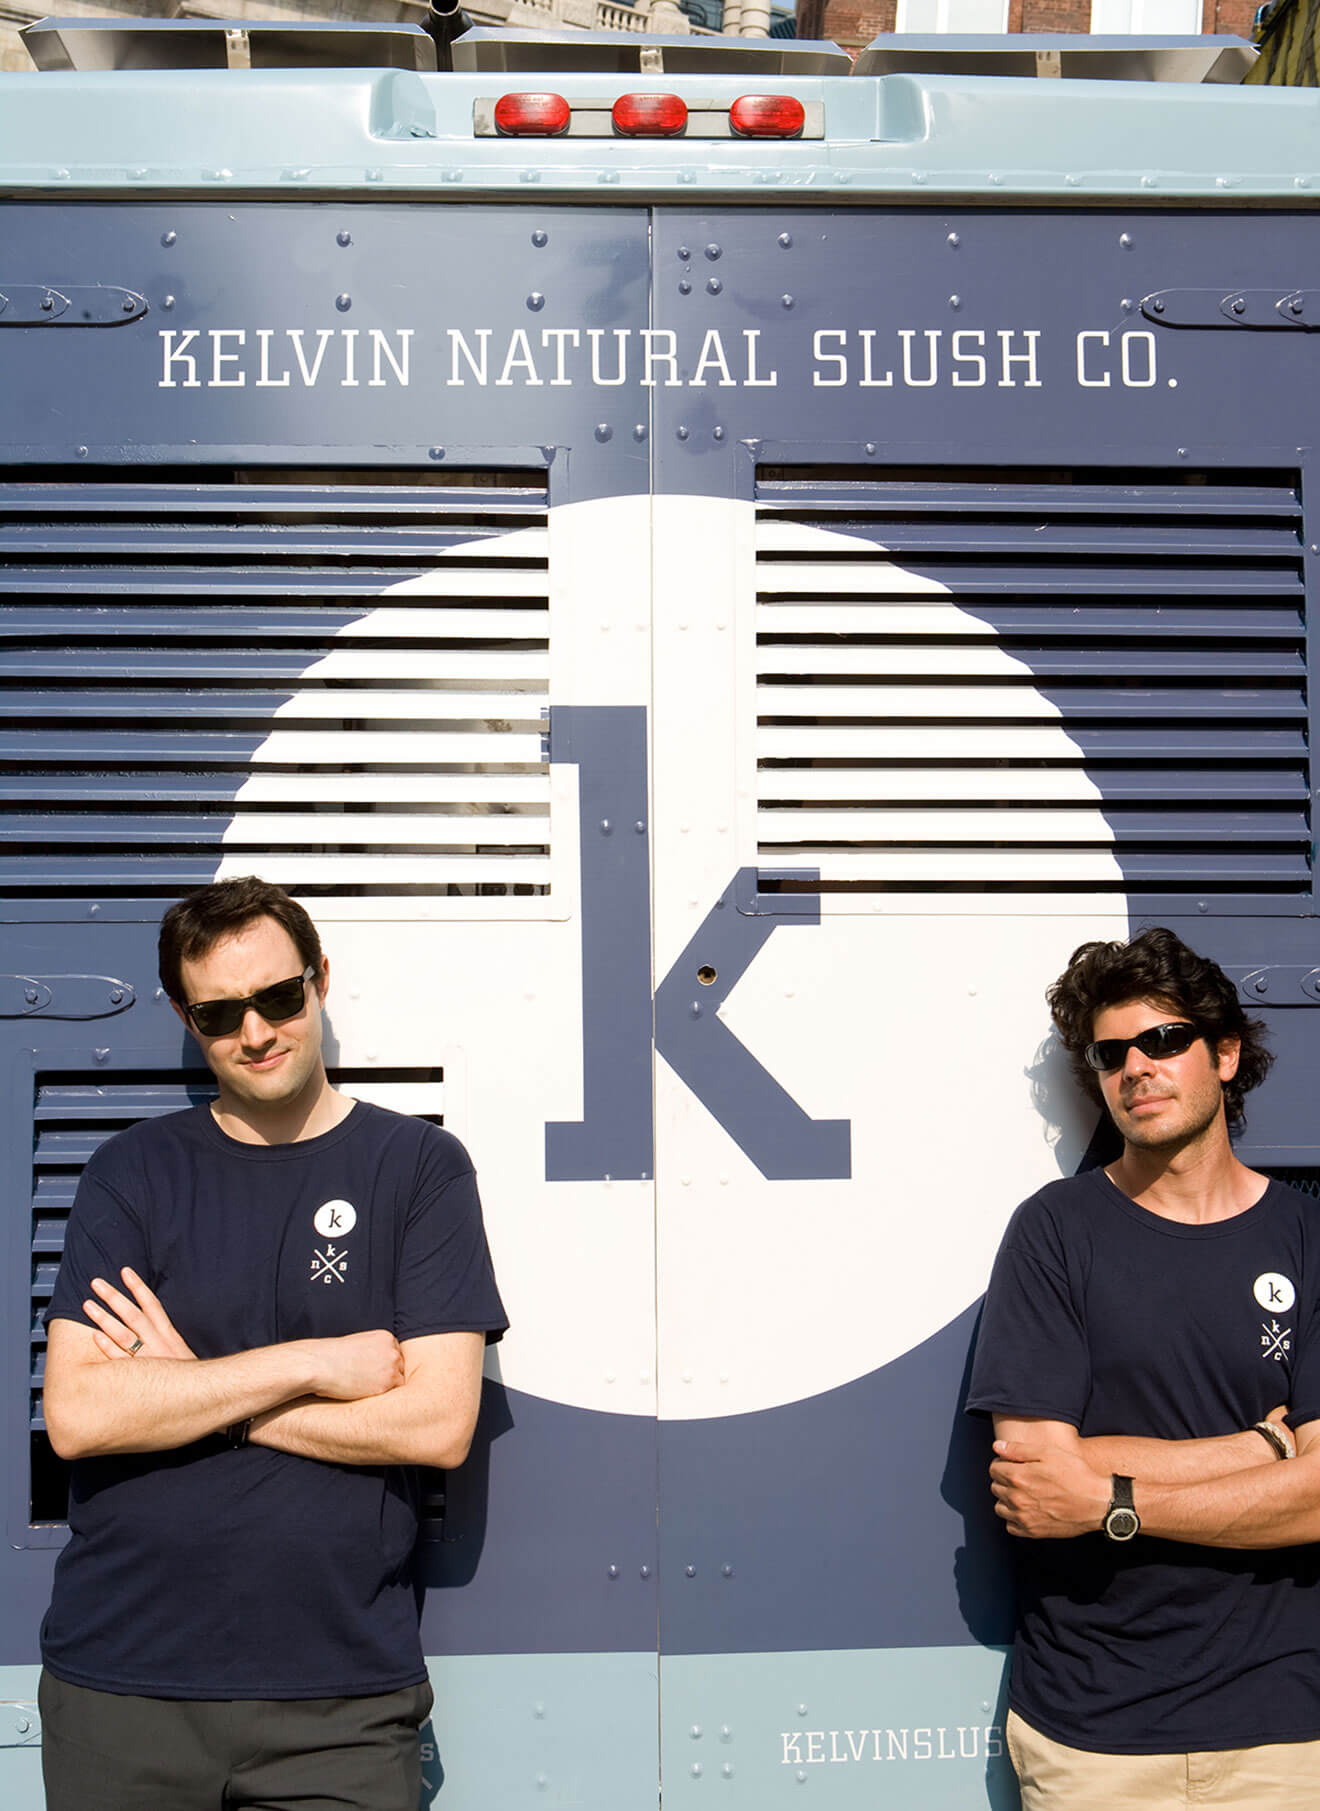 Alex Rein and Zack Silverman - Founders of Kelvin Slush Co., in front of truck